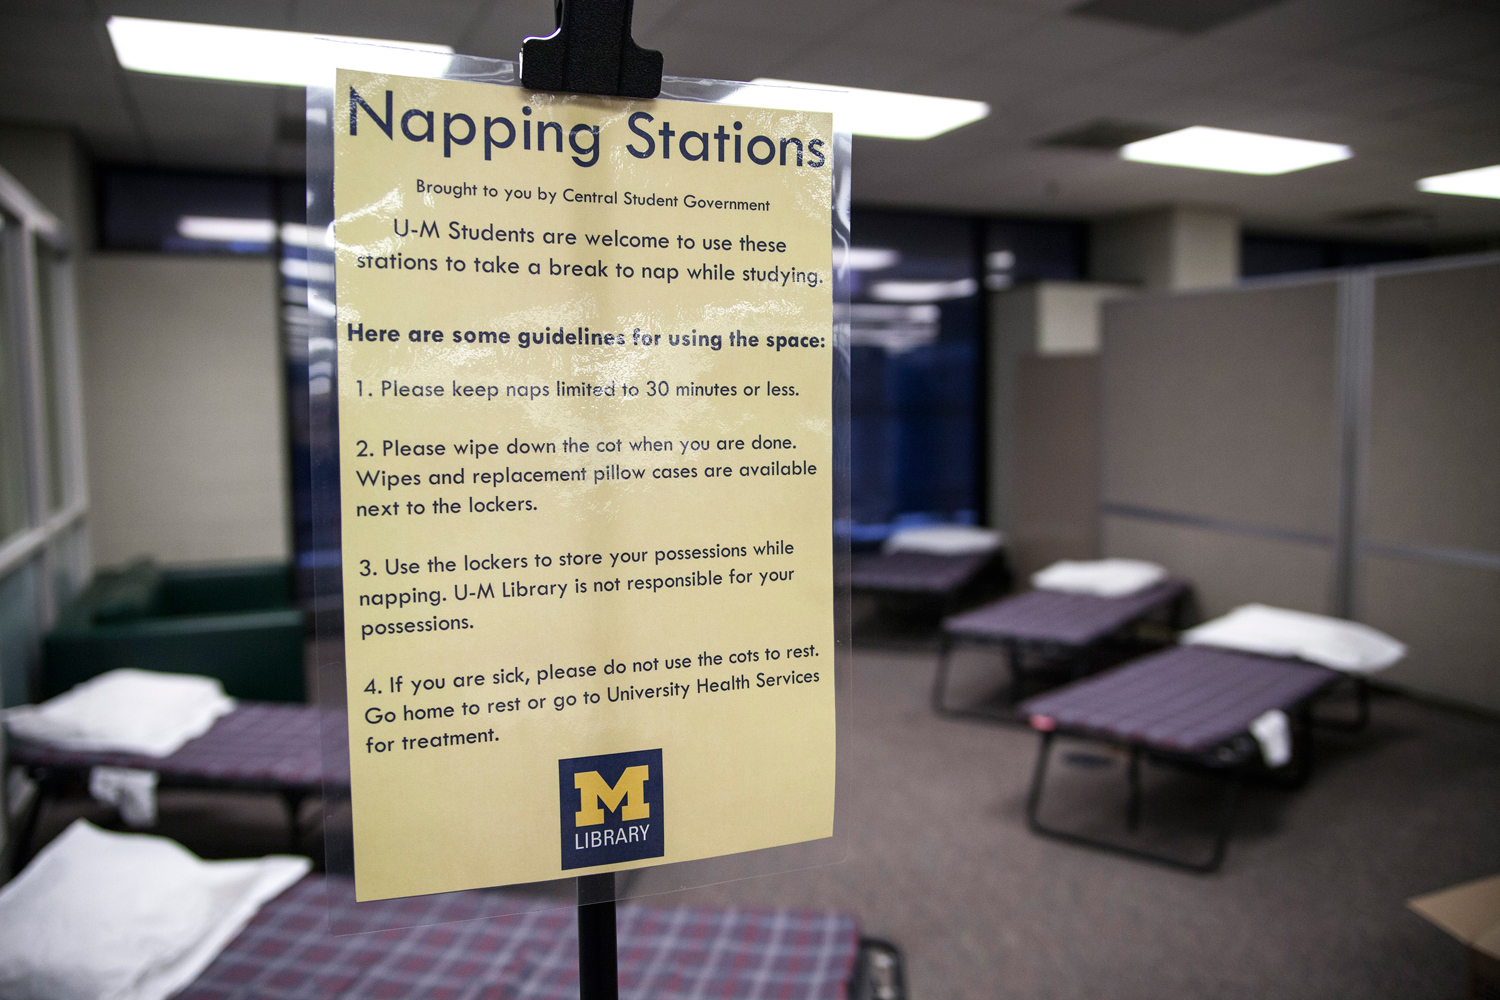 An April 29, 2014 photo shows the napping station that was implemented at the Shapiro Undergraduate Library at the University of Michigan in Ann Arbor, Michigan.